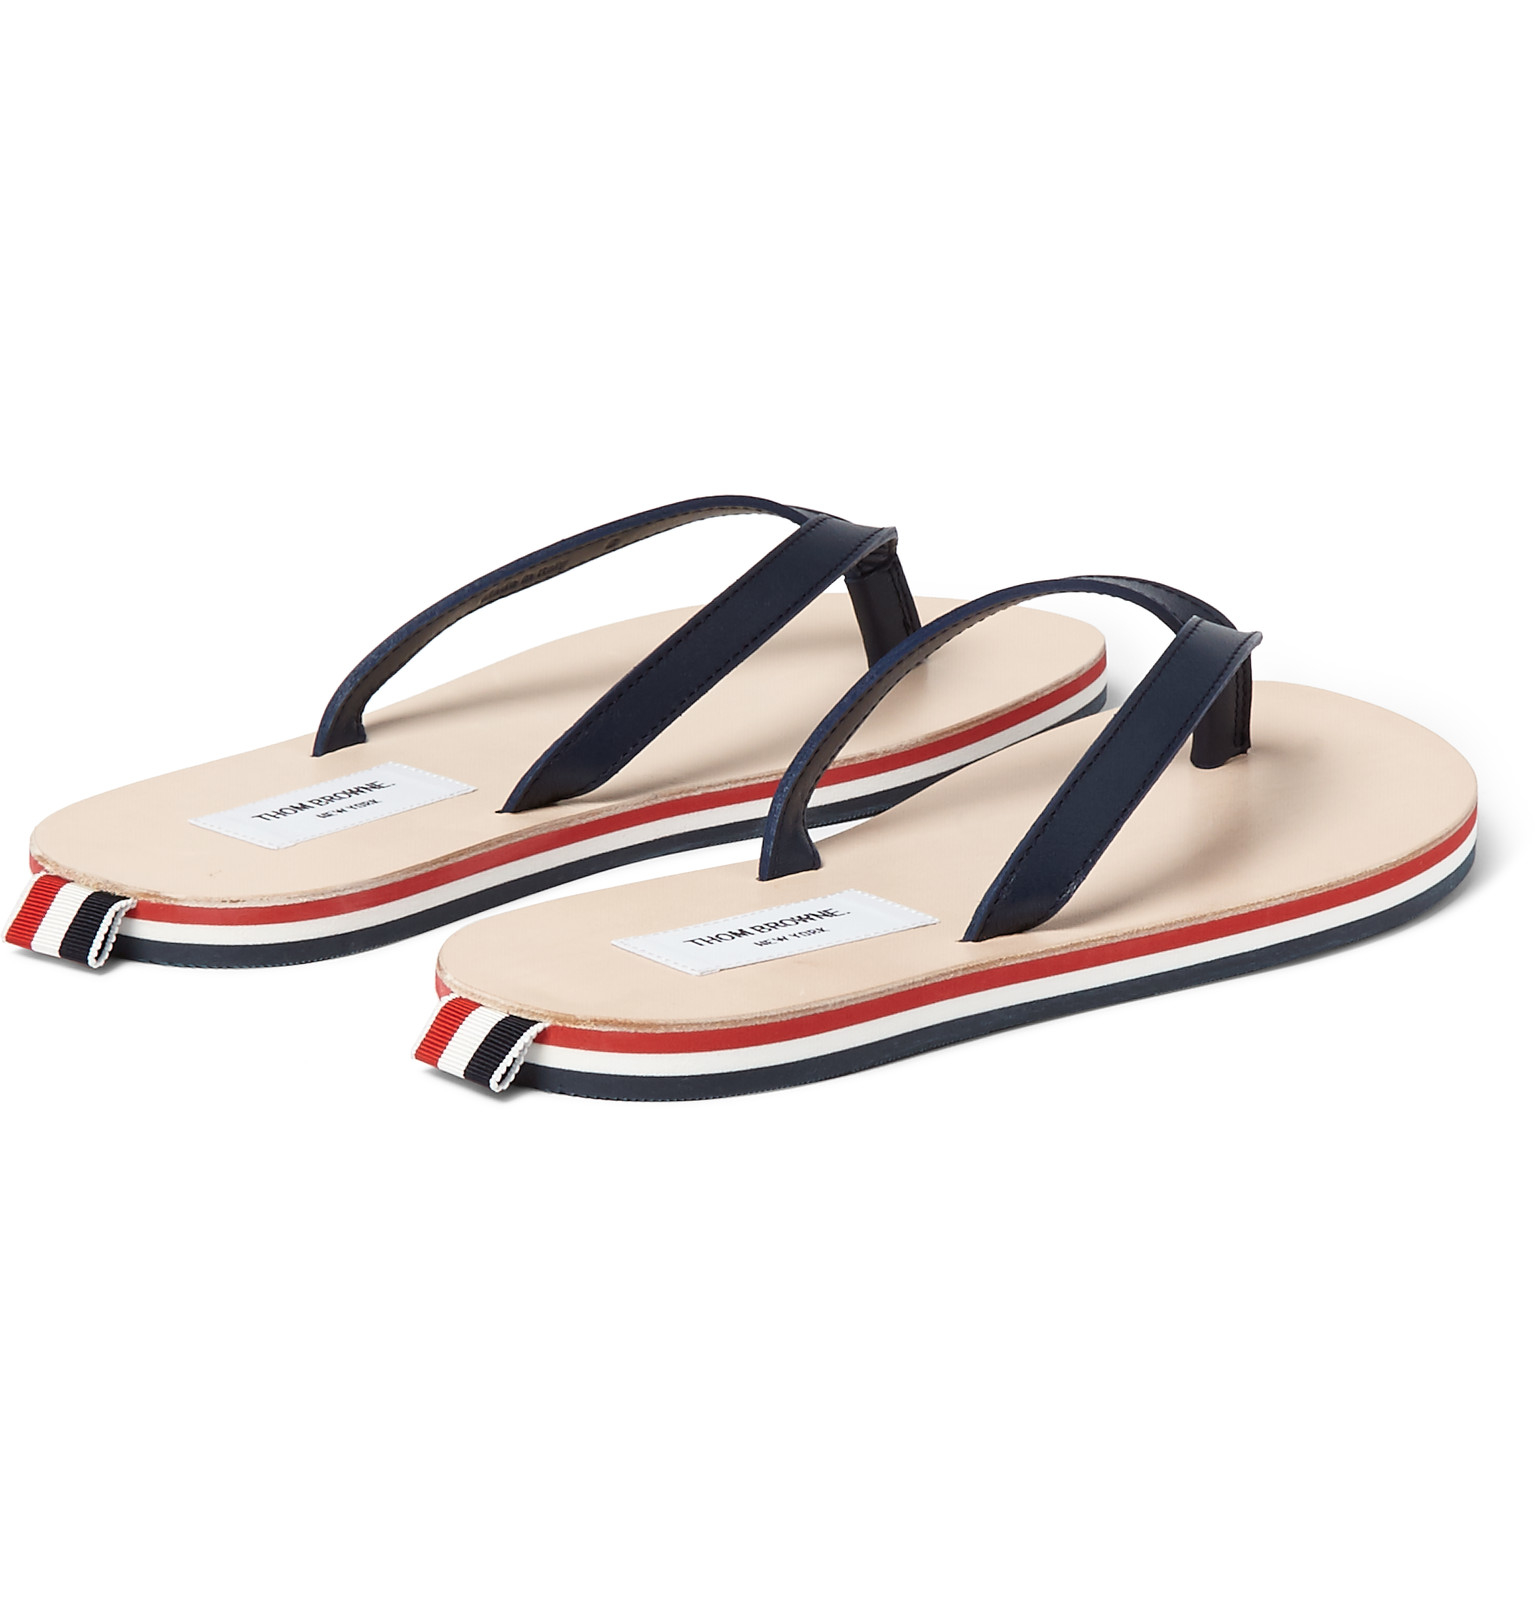 Thom BrowneStriped Leather Flipflops MqNsDtd